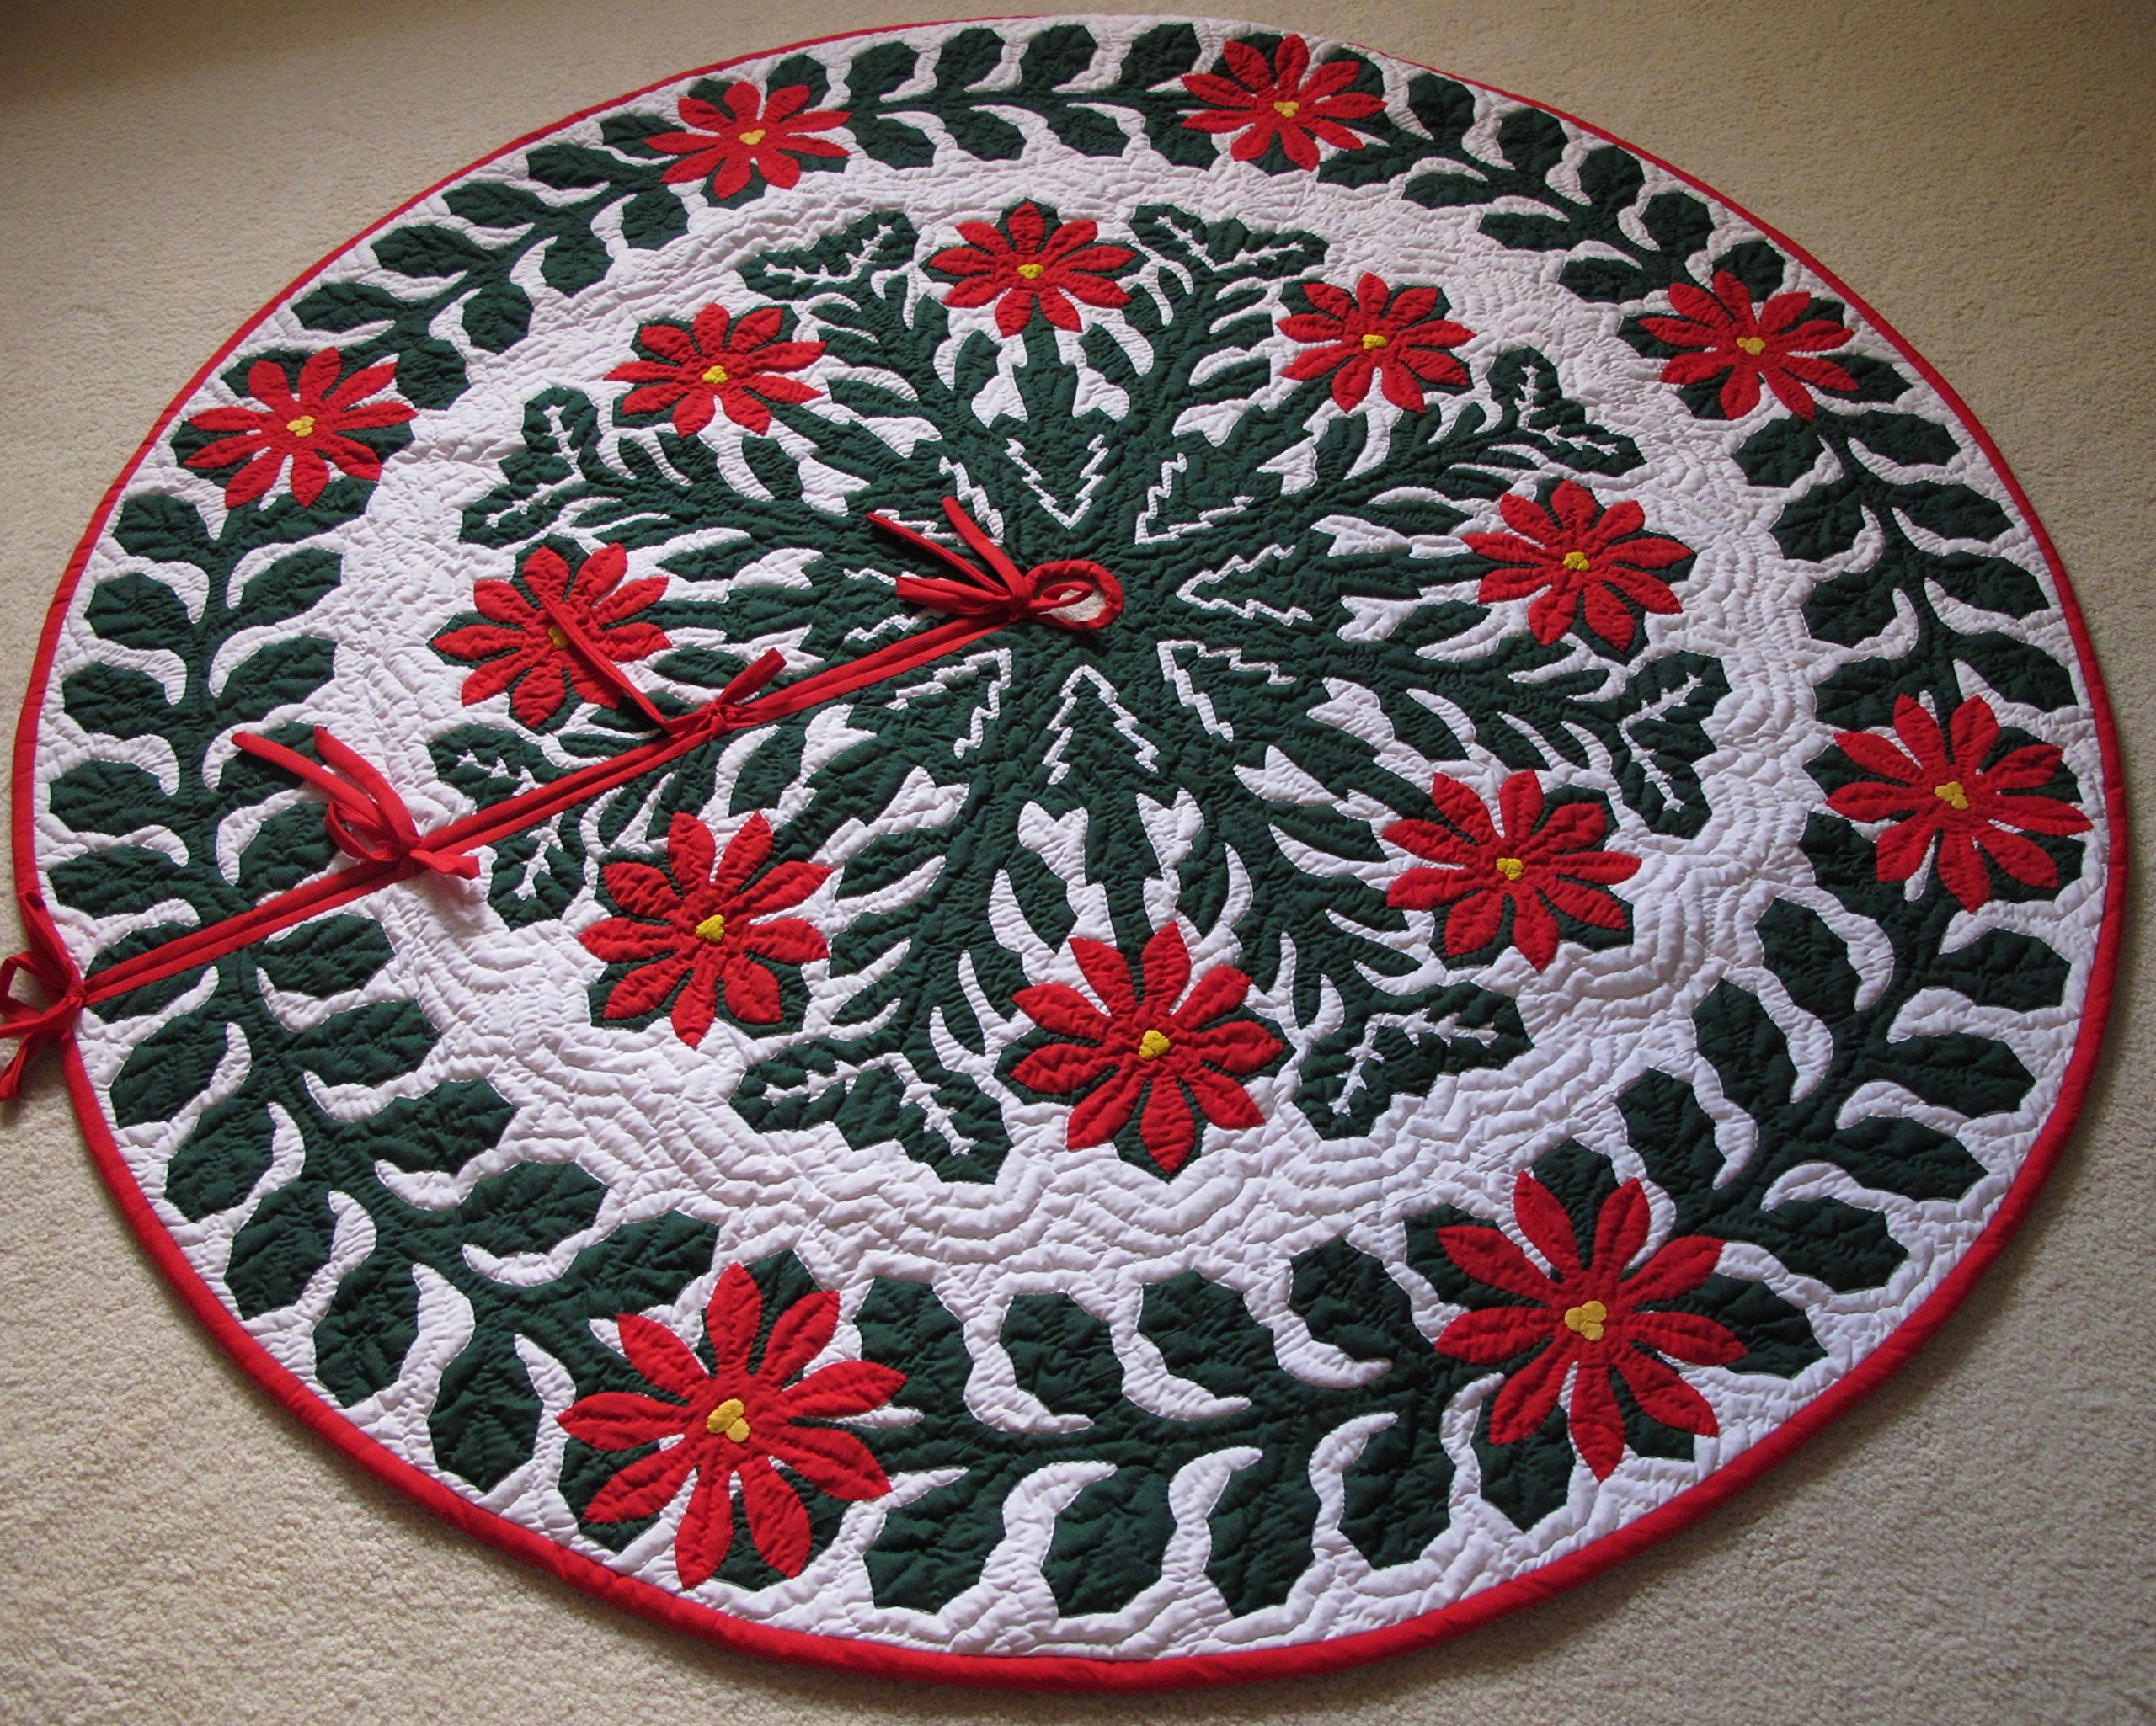 Hawaiian Quilt 100% Hand Quilted and 100% Hand Appliqued Christmas Tree Skirt 60'' by Hawaiian Quilt Wholesale (Image #1)